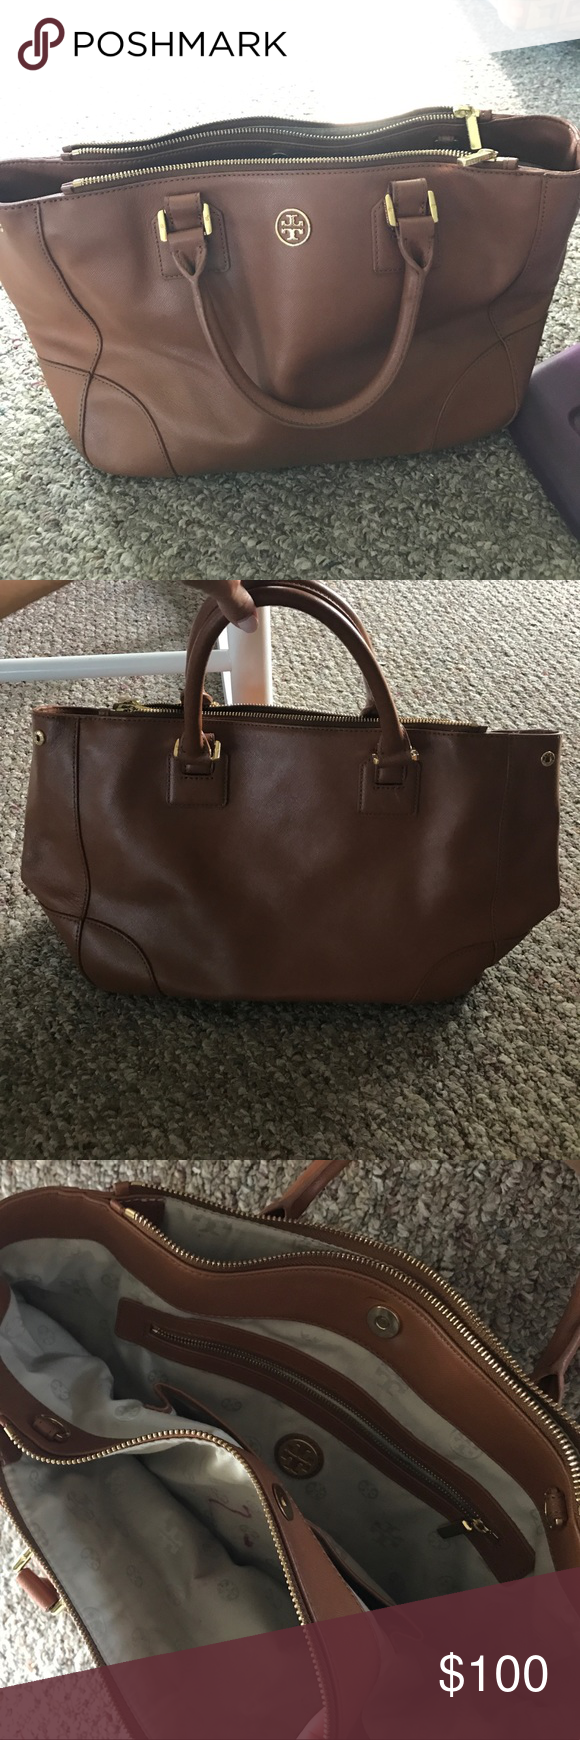 Tory Burch Handbag Camel Colored Looks New From Outside Used And